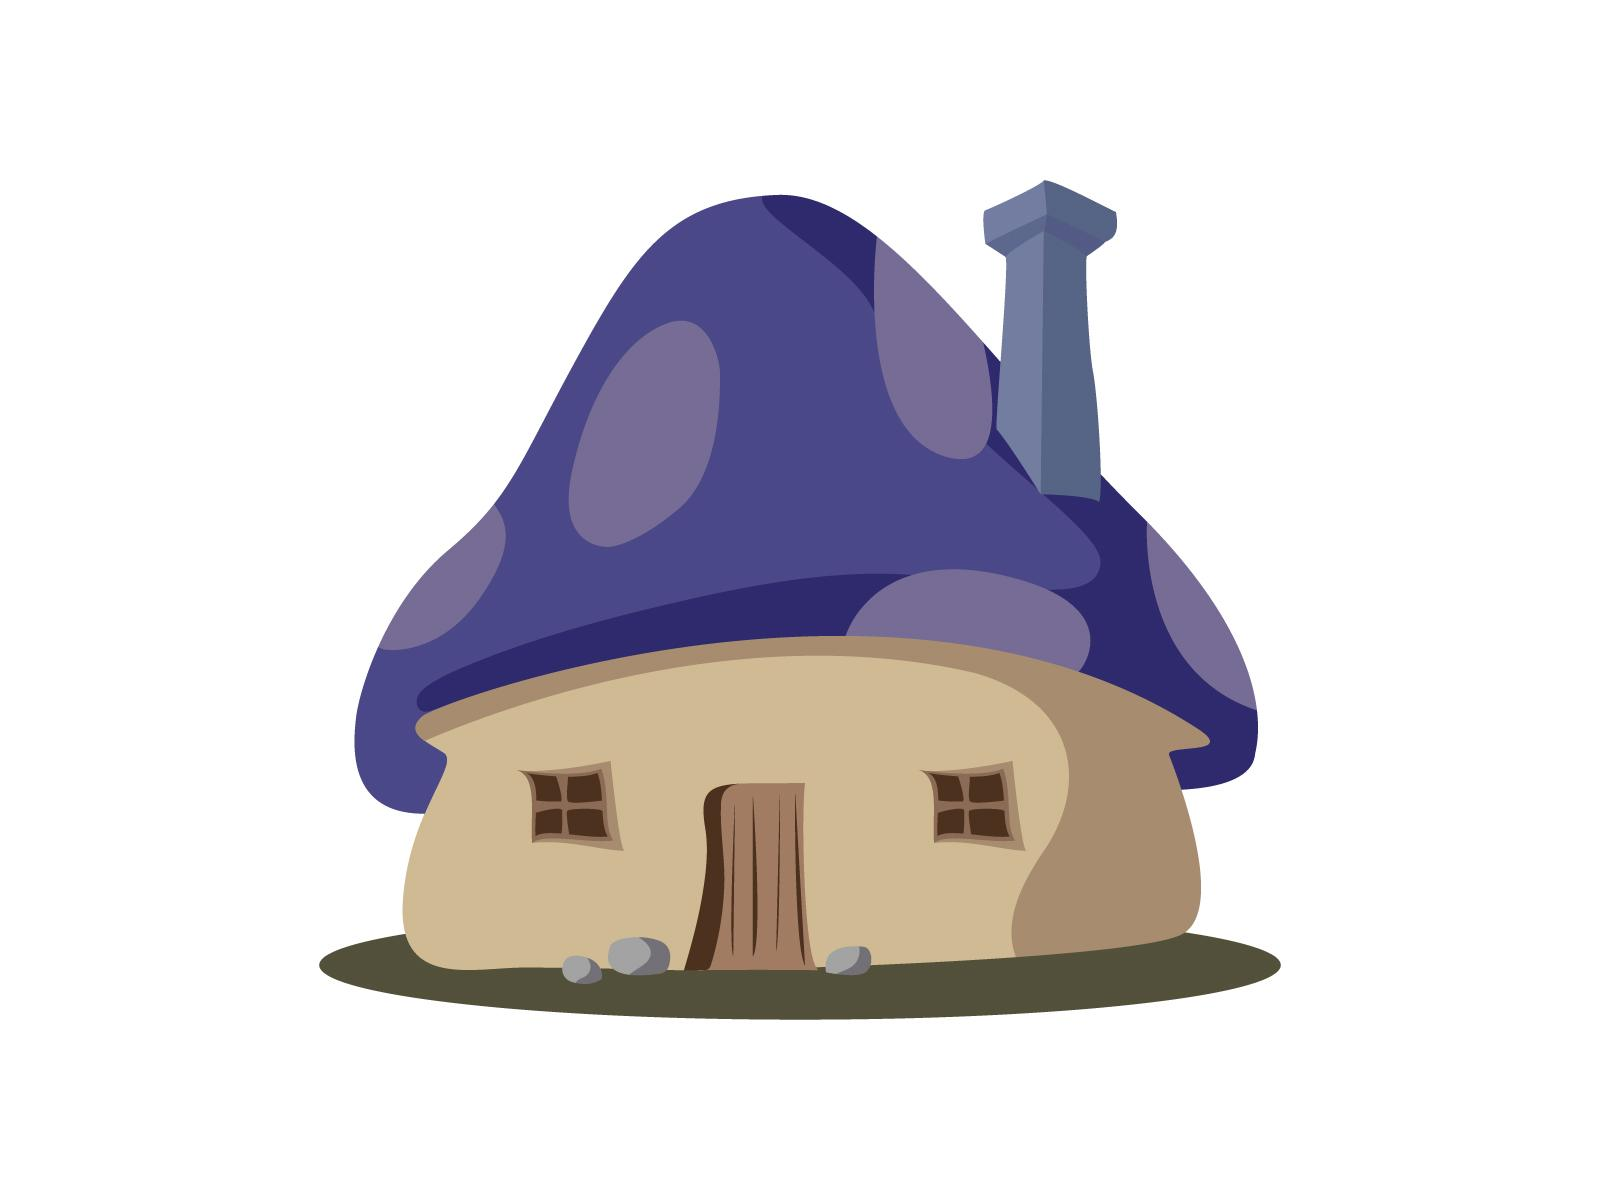 Smurf House | Skillshare Projects